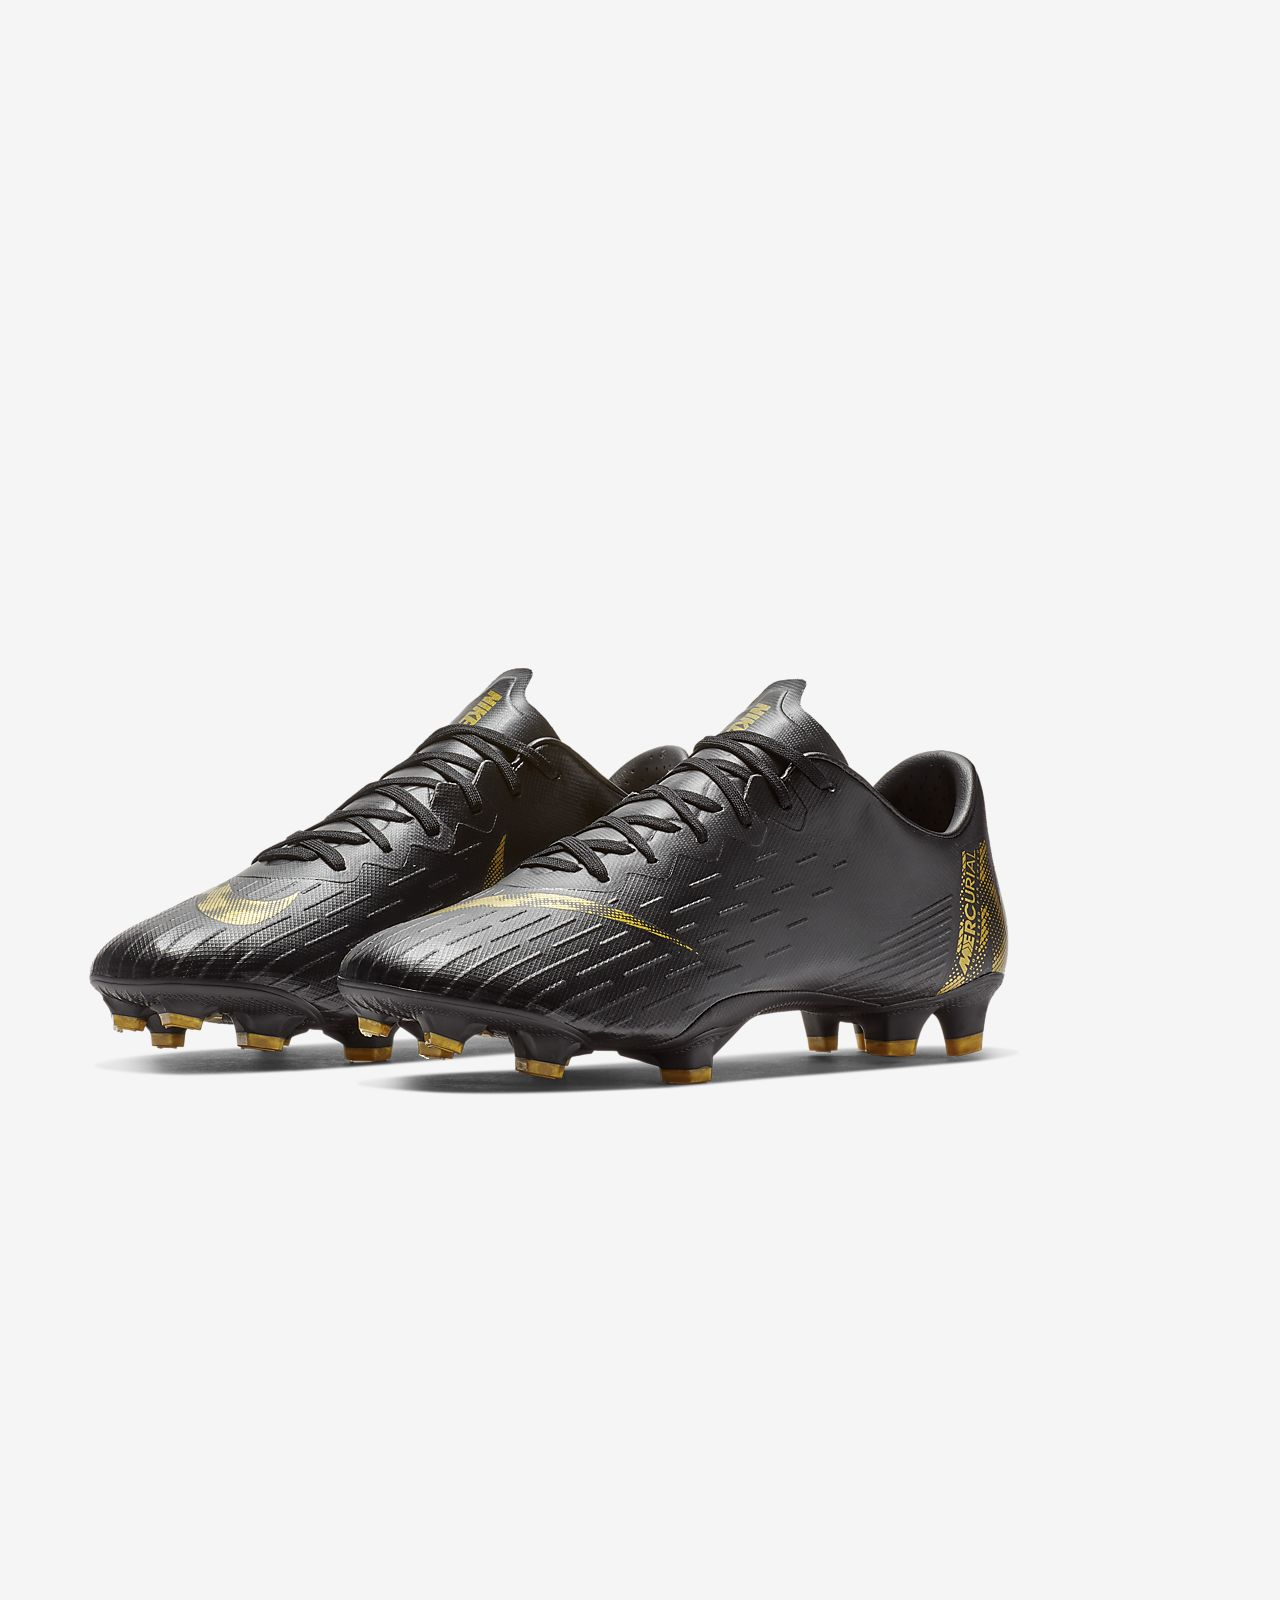 sale retailer dc203 43fbb ... Nike Vapor 12 Pro FG Firm-Ground Soccer Cleat